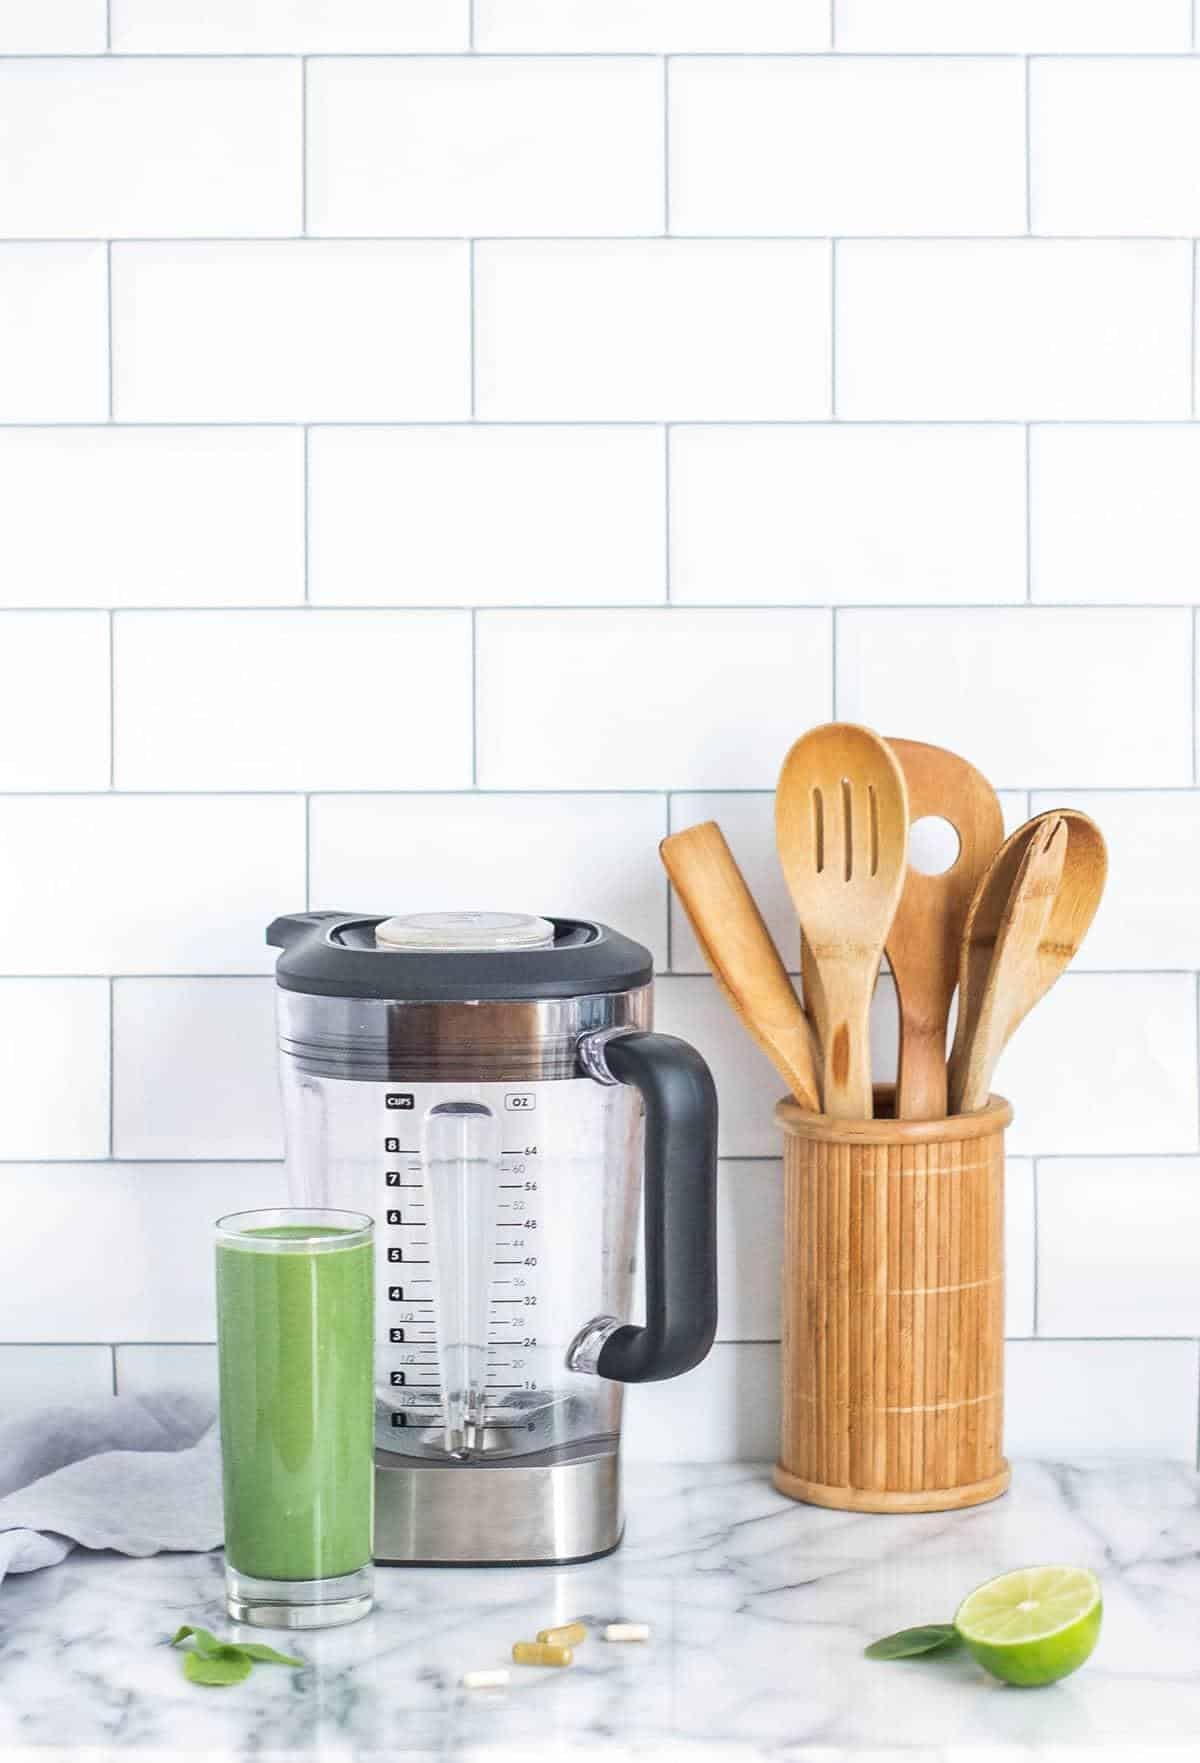 The best blenders for vegans